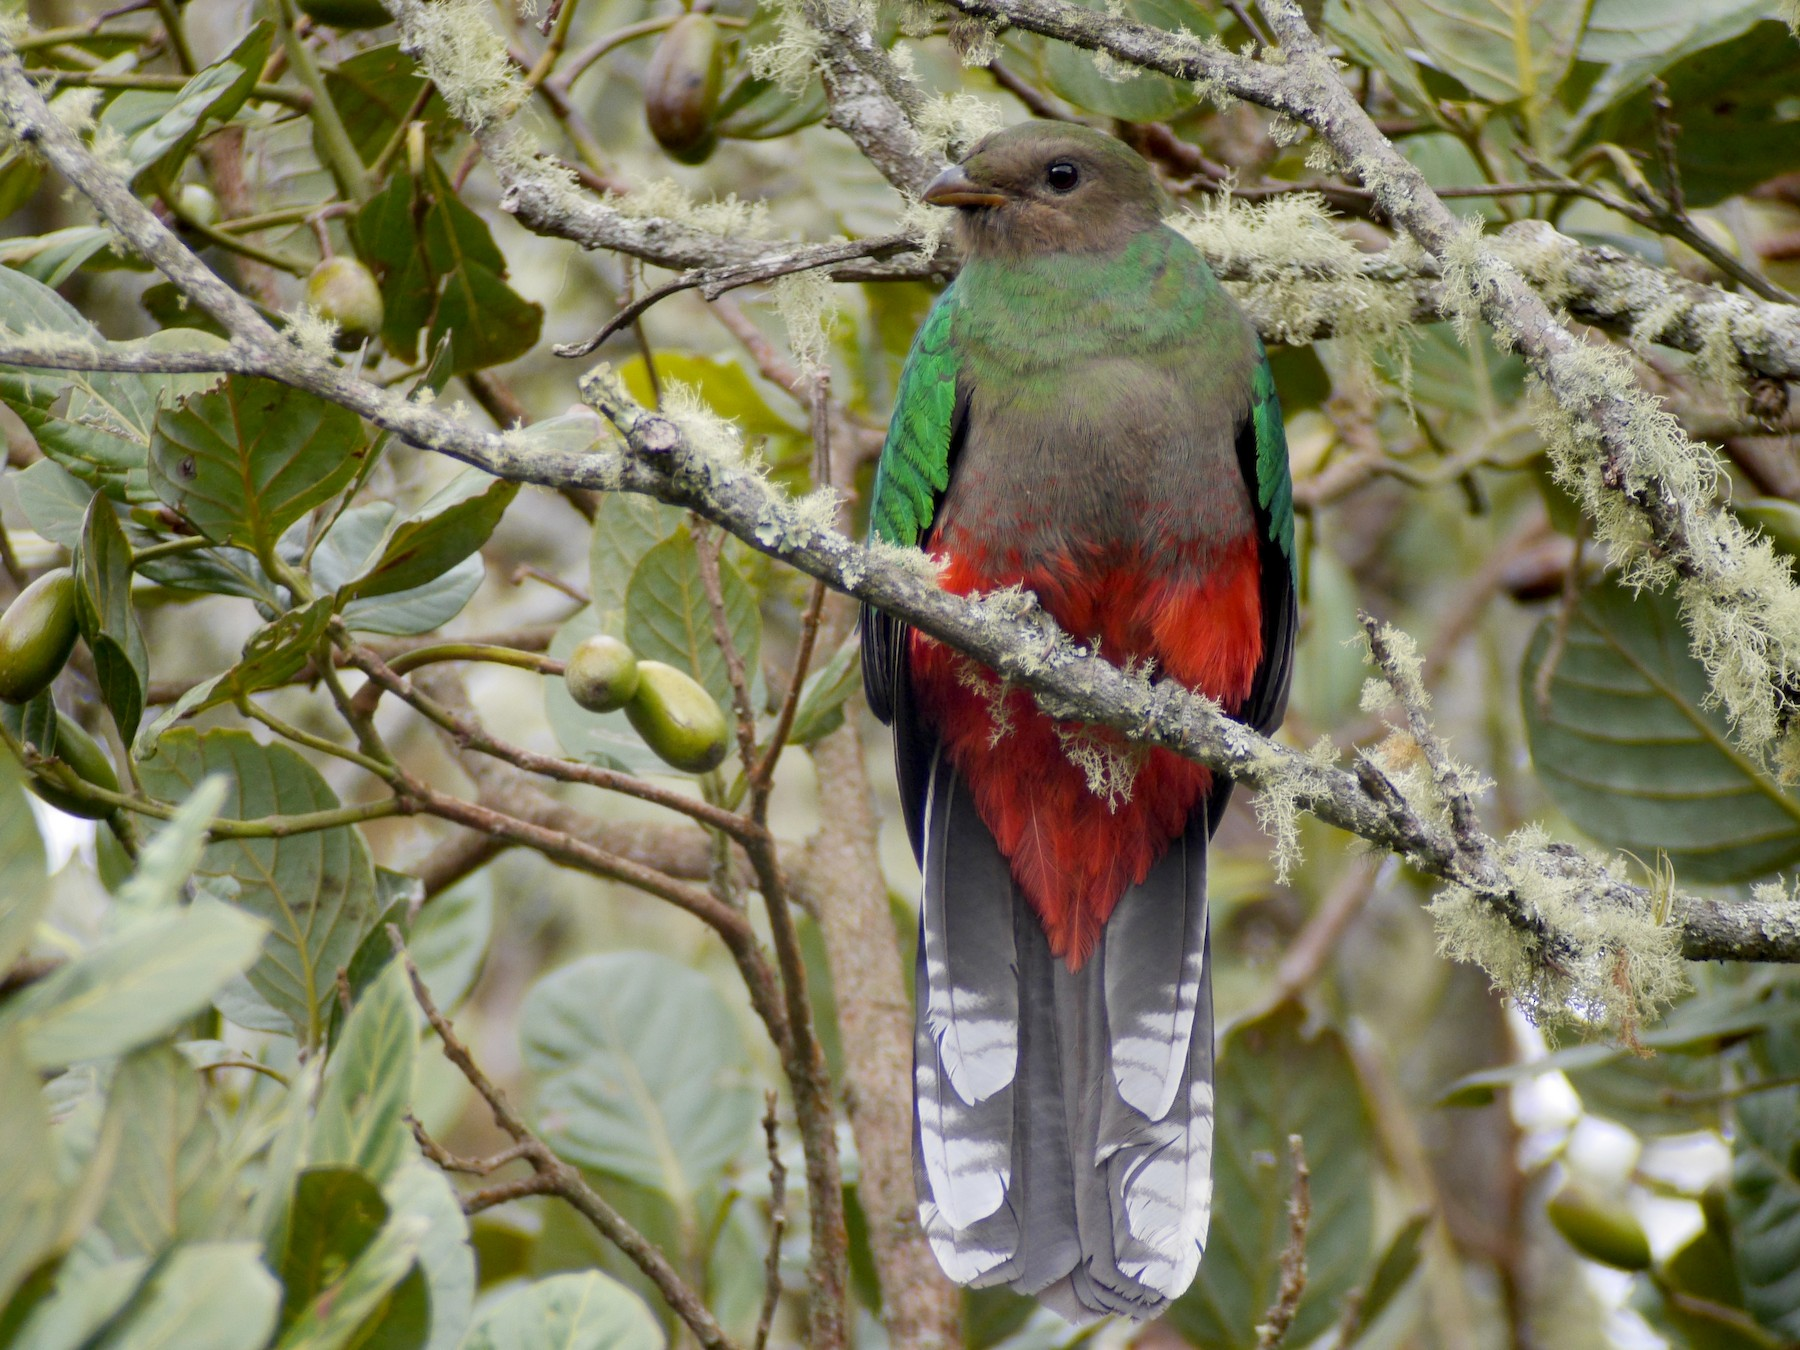 White-tipped Quetzal - Mike Grant